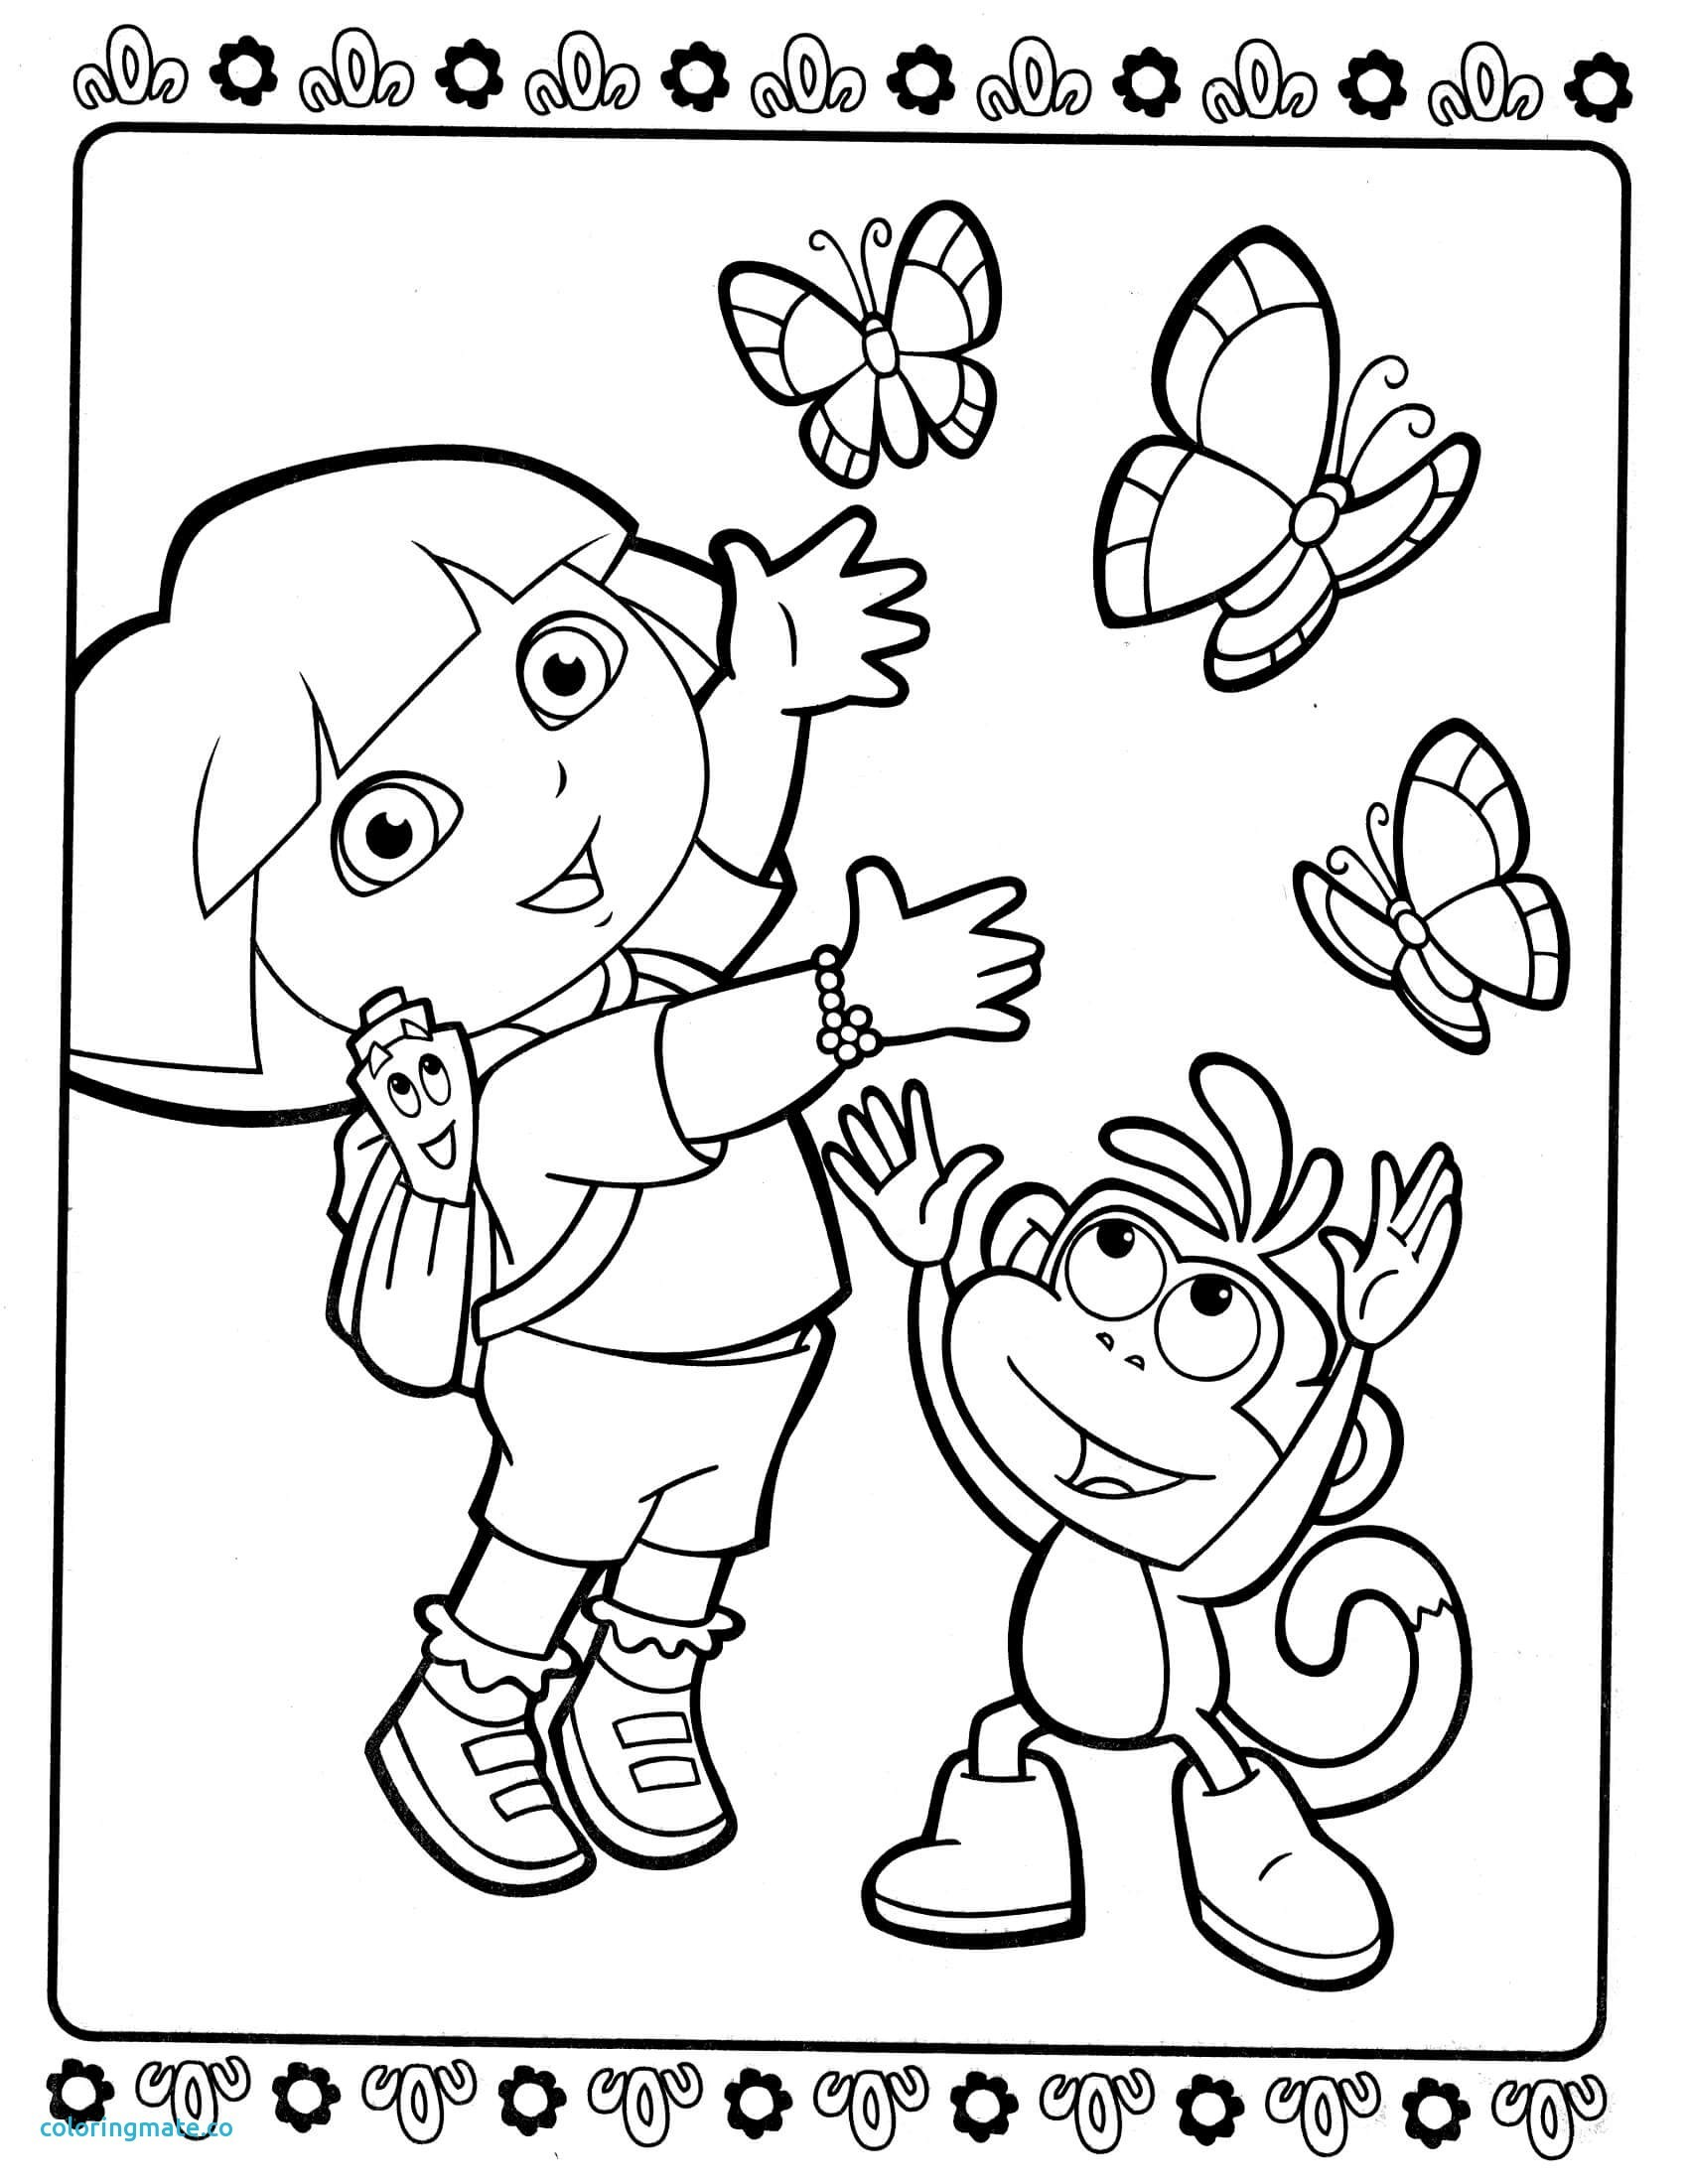 coloring pages dora and friends dora and friends coloring pages to download and print for free coloring pages dora friends and